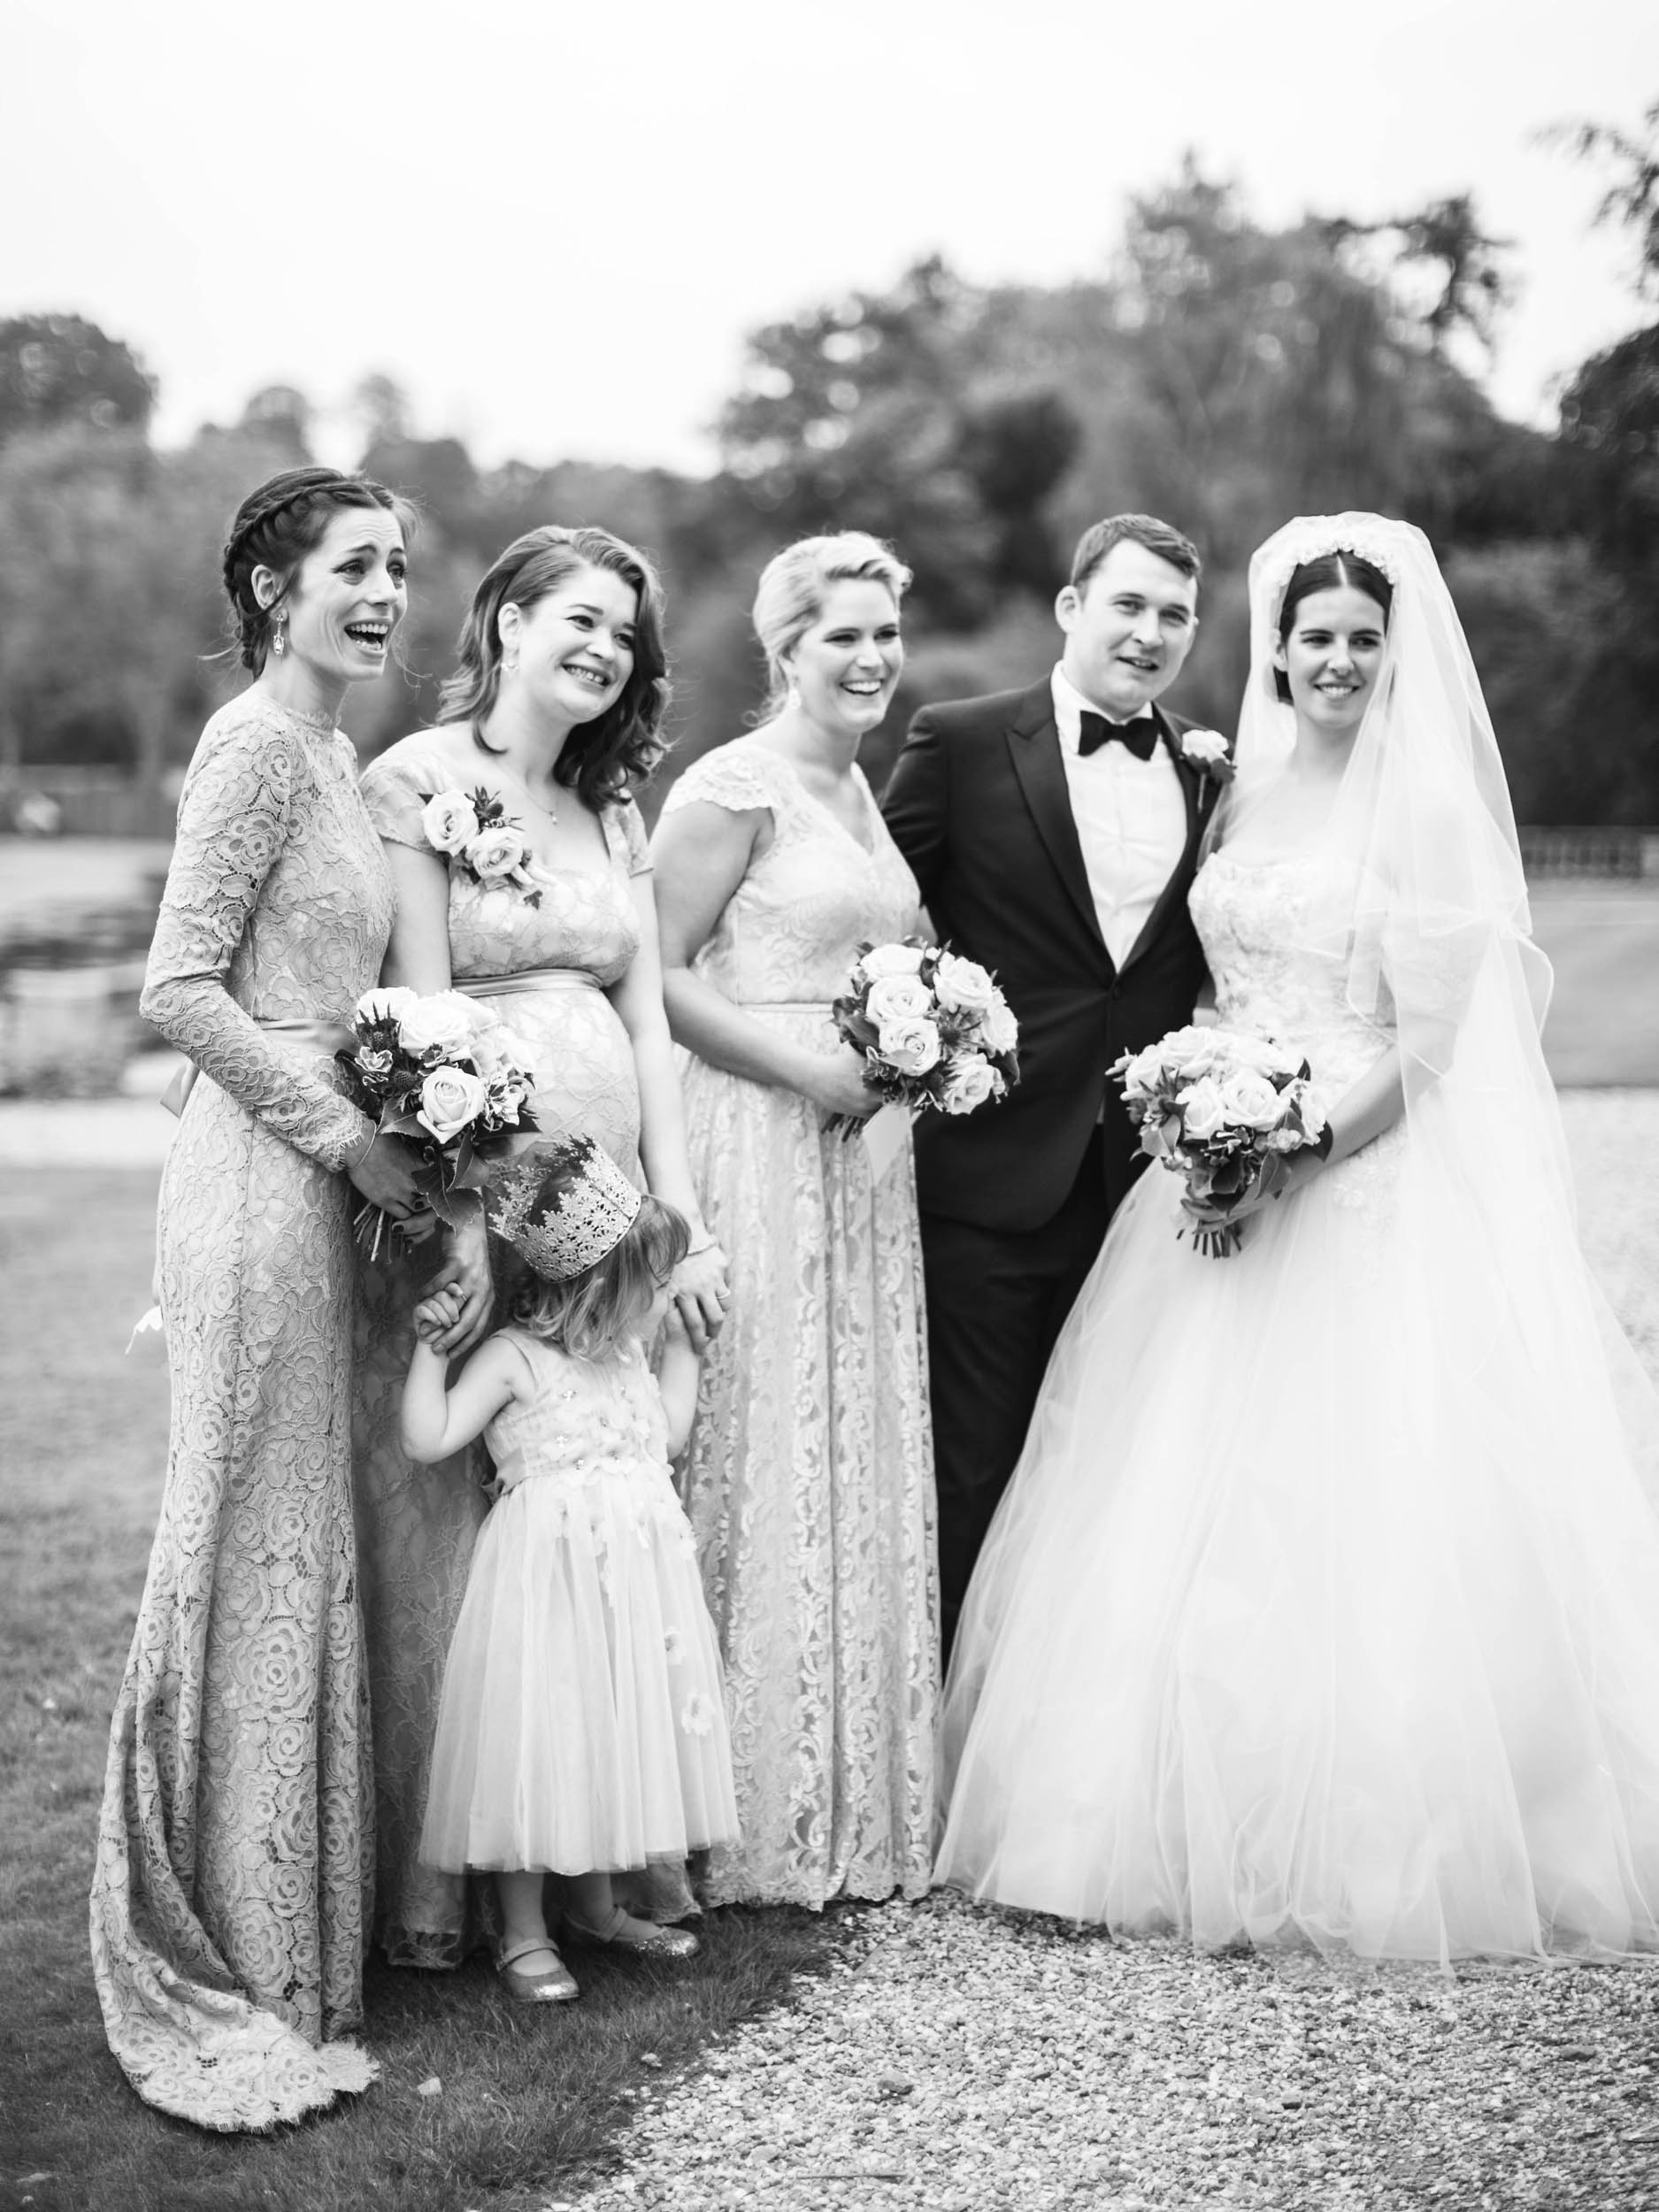 Amy O'Boyle Photography- Destination & UK Fine Art Film Wedding Photographer- Stoneleigh Abbey Wedding-50.jpg